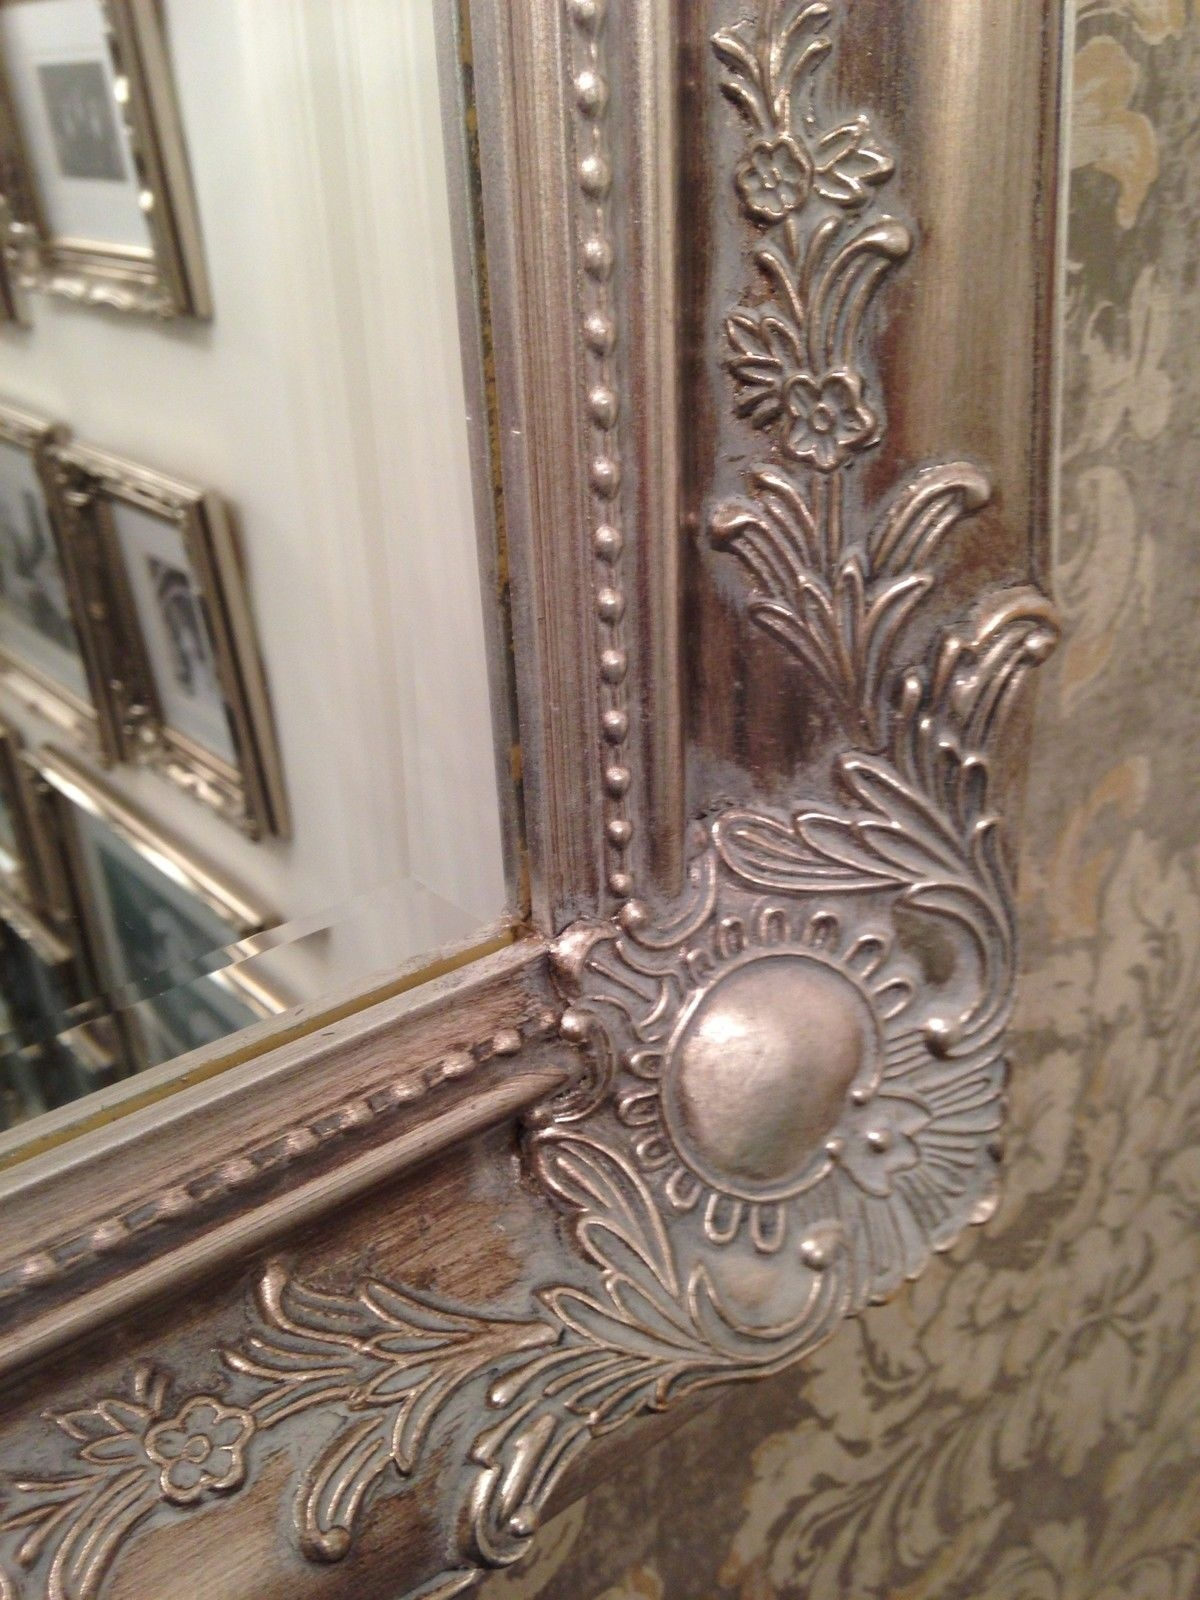 Antique Silver Shab Chic Ornate Decorative Over Mantle Wall Mirror In Large Antique Silver Mirror (Image 1 of 15)